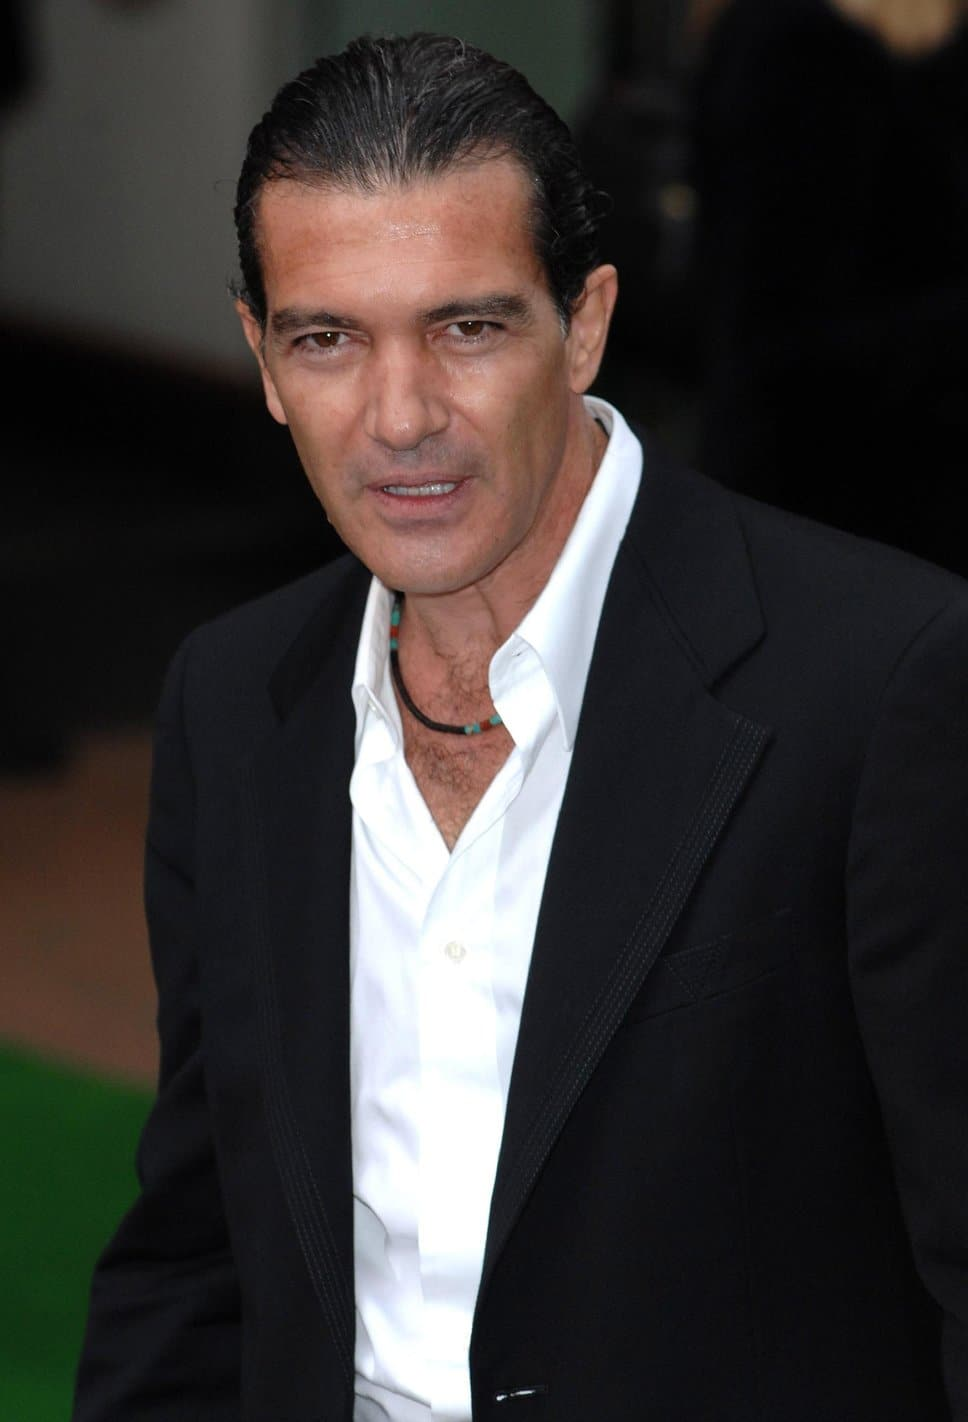 Antonio Banderas American, Spanish Actor, Comedian, Producer, Singer